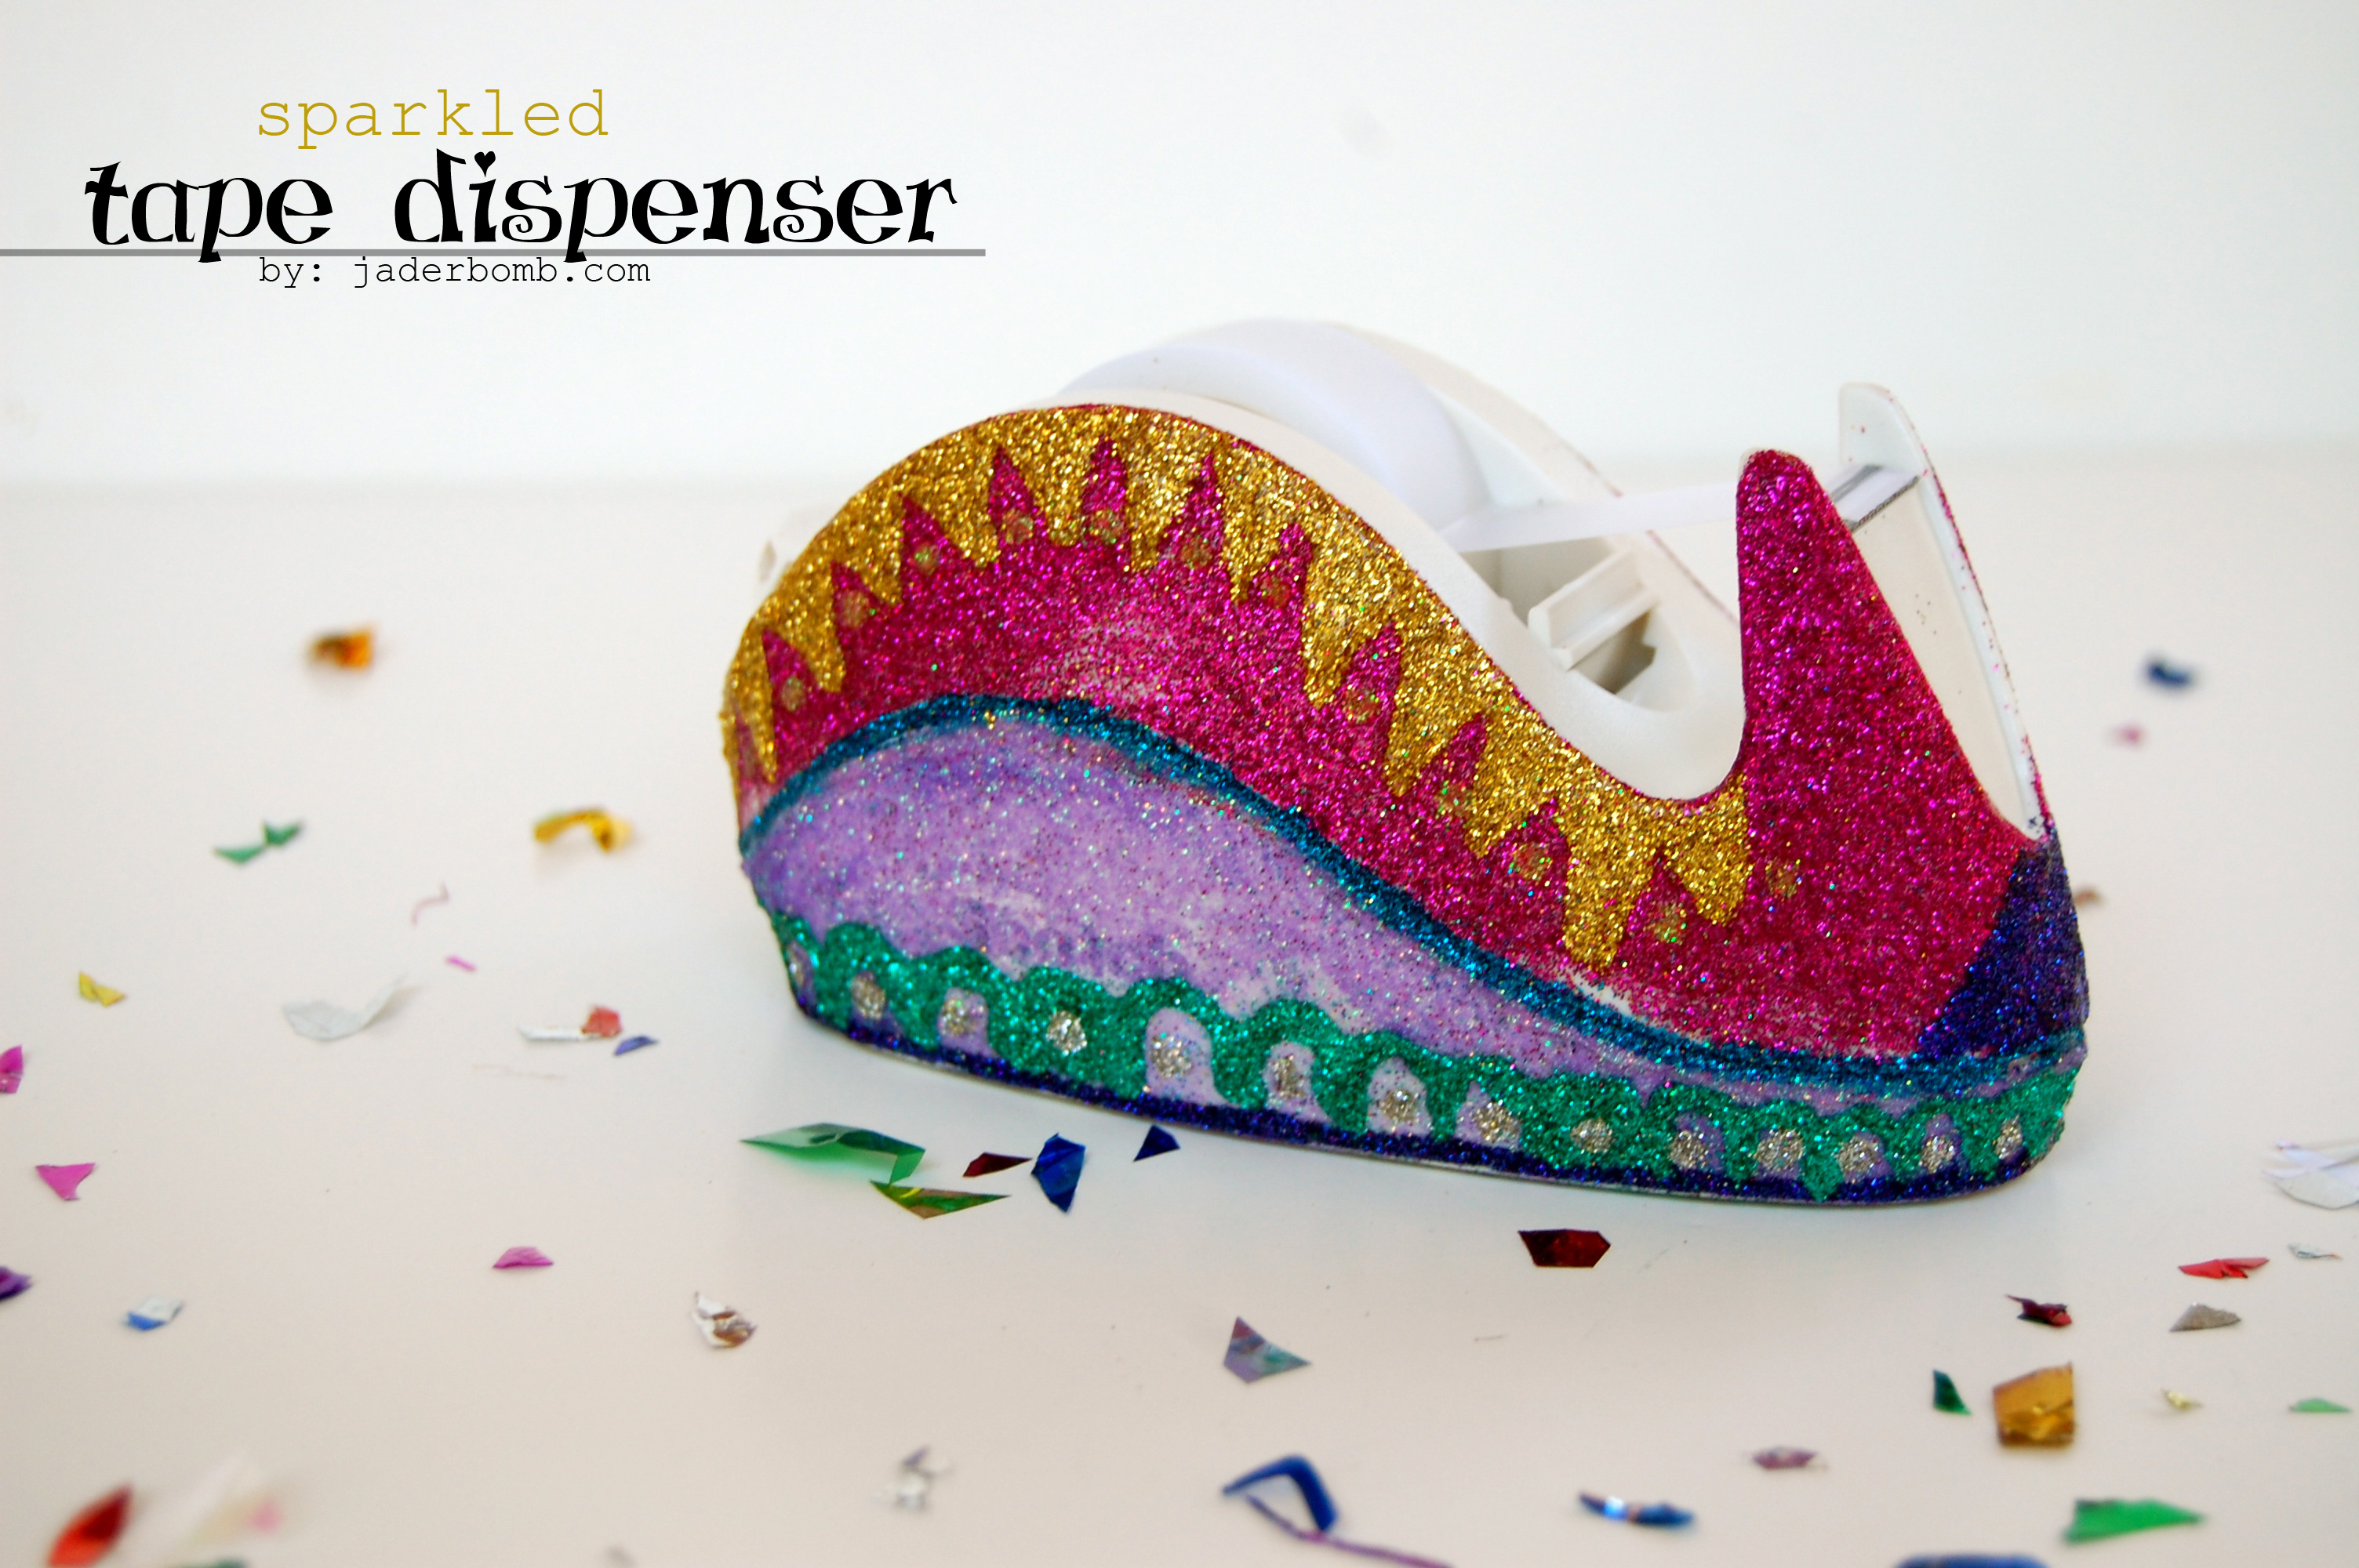 SPARKLED_TAPE_DISPENSER_jaderbomb